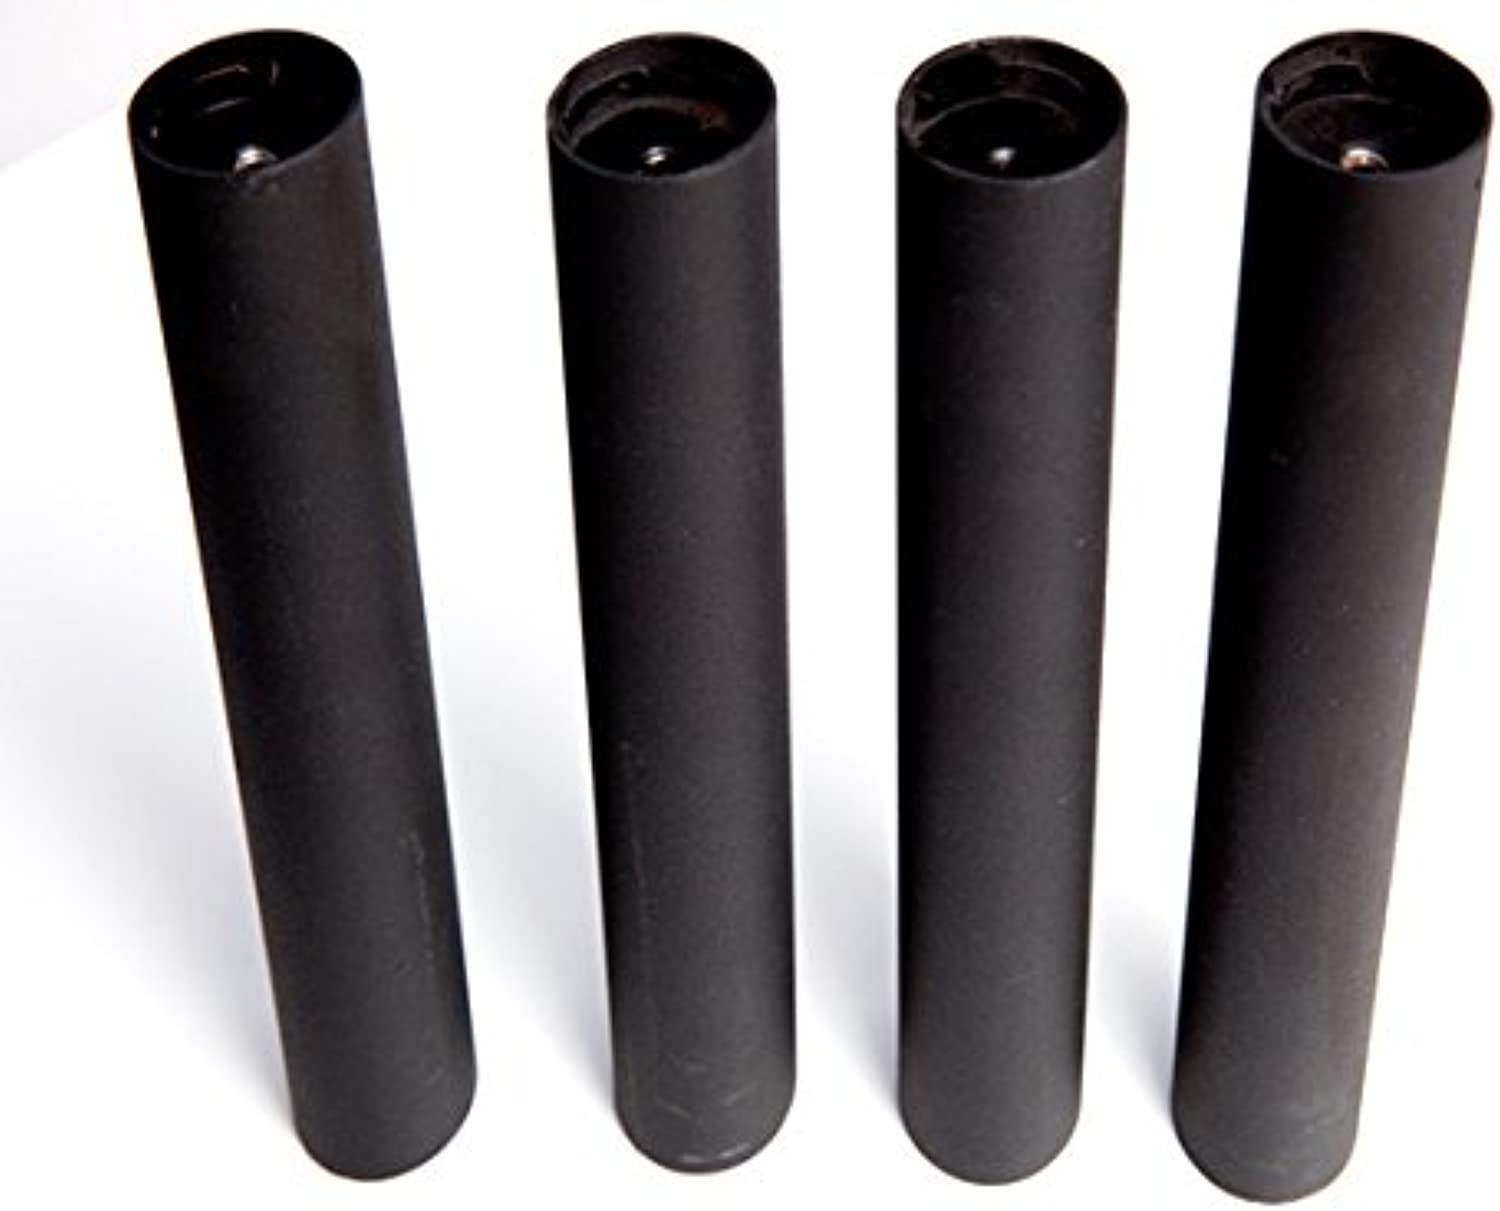 Pangea Vulcan Replacement Posts 10 inch - Set of 4